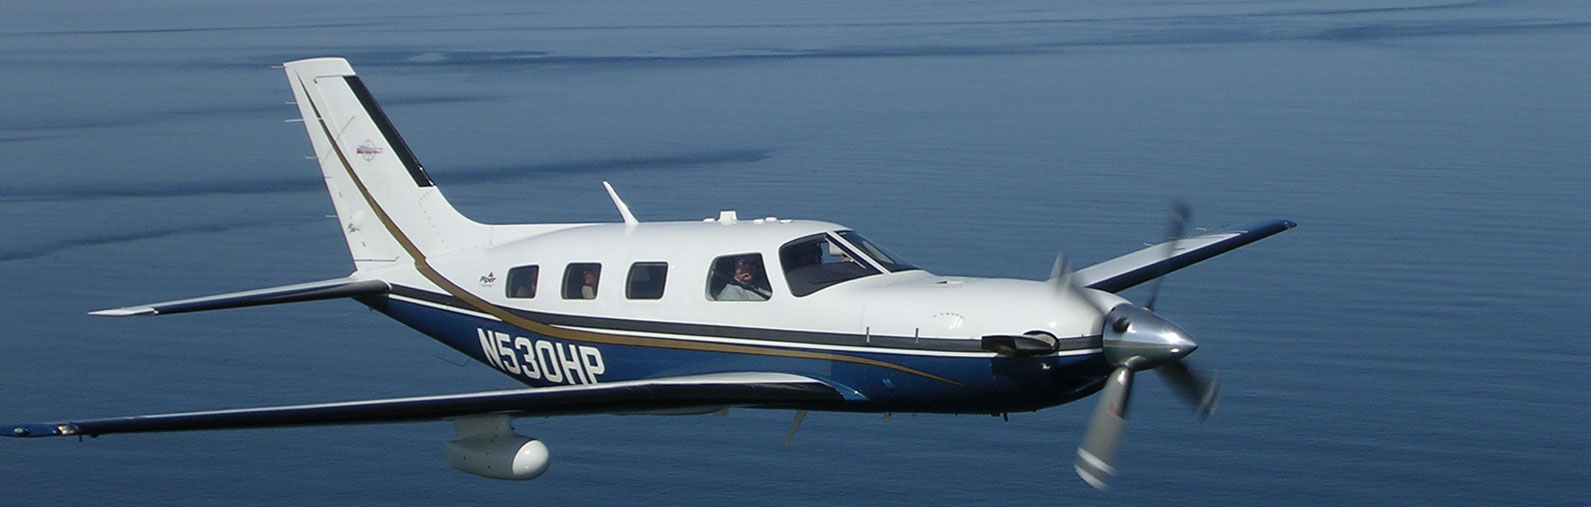 Our Lenders - High Performance Aircraft, Inc.